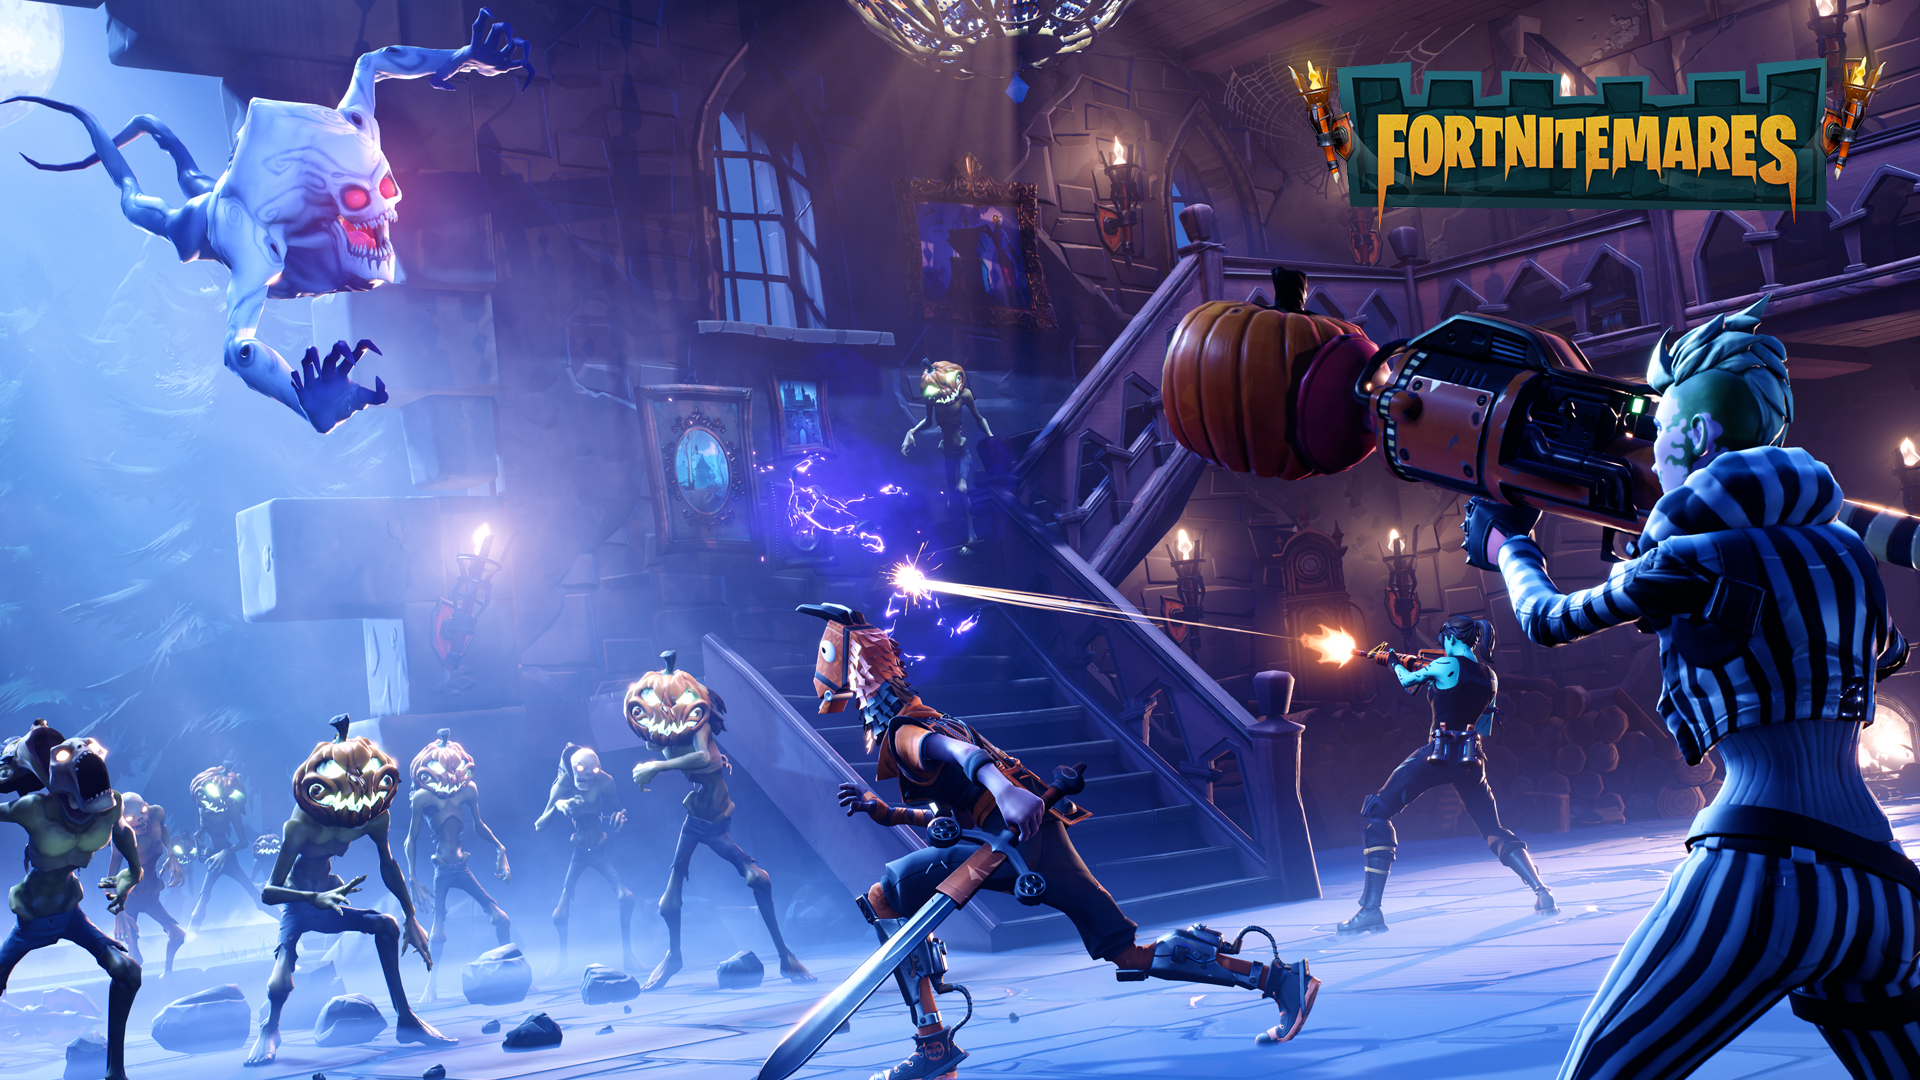 Fortnitemares update 1 8 patch notes - Fortnite save the world wallpaper ...